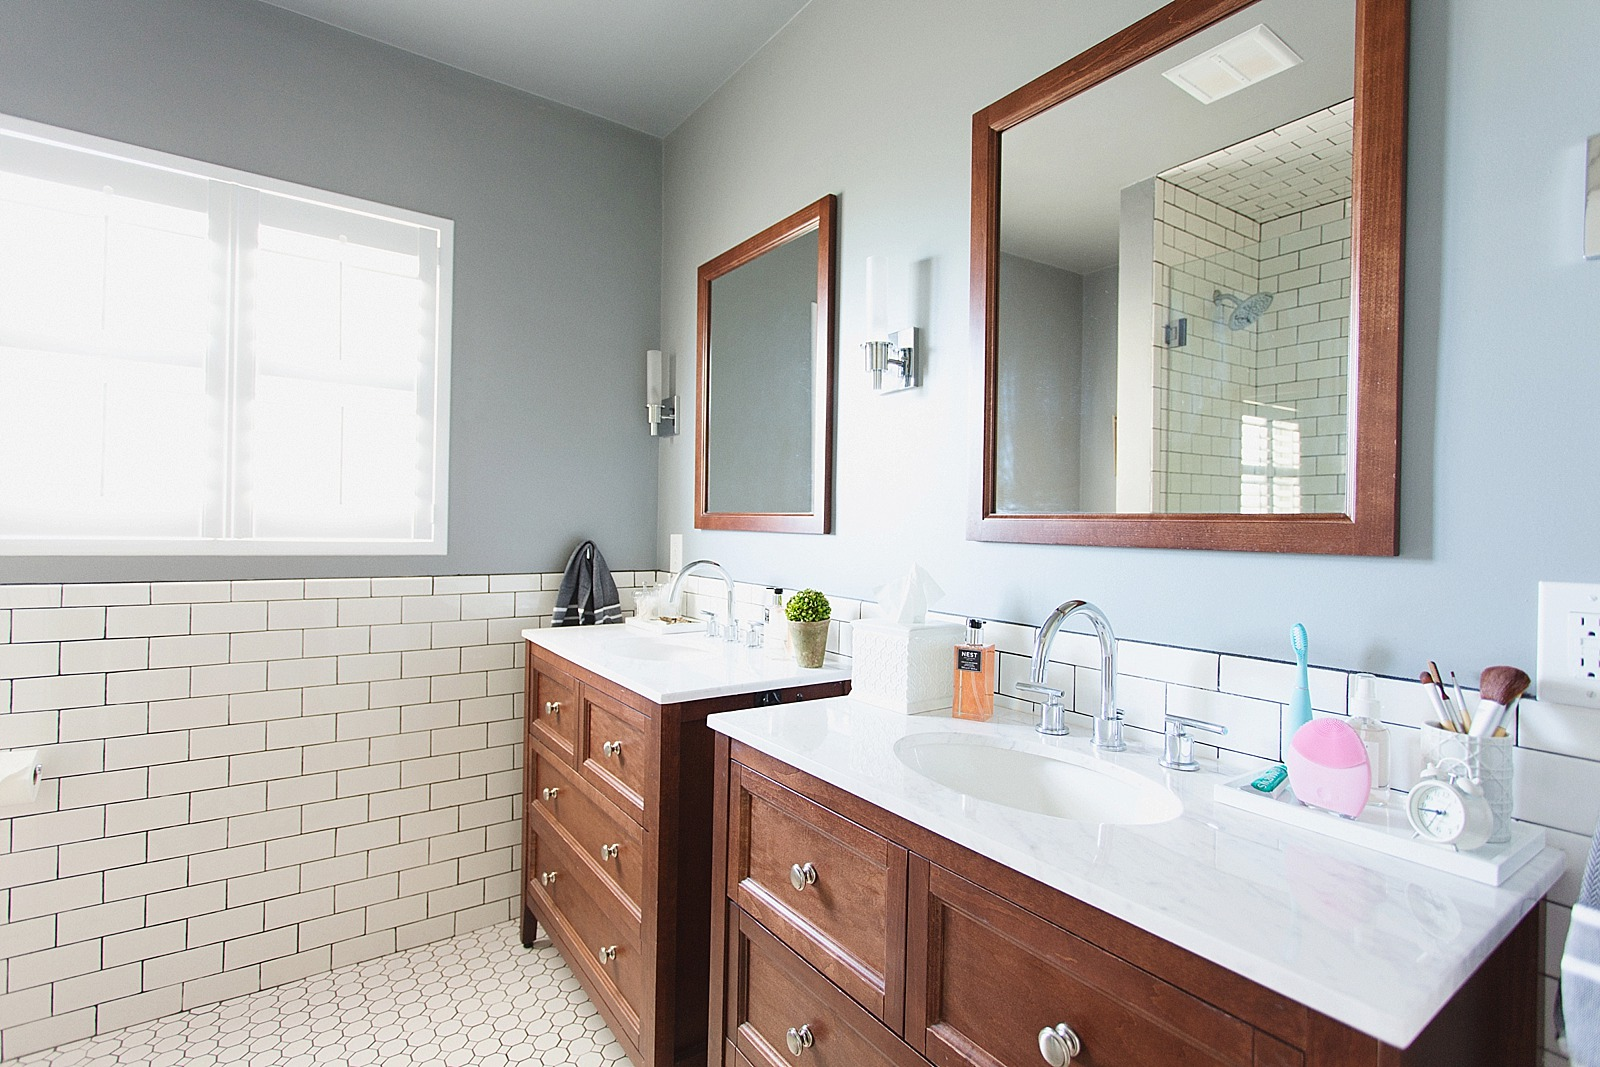 ... White Subway Tile With Dark Black Grout Bathroom Jonathan Adler Touches  Zebra Rug And Bathroom Refresh